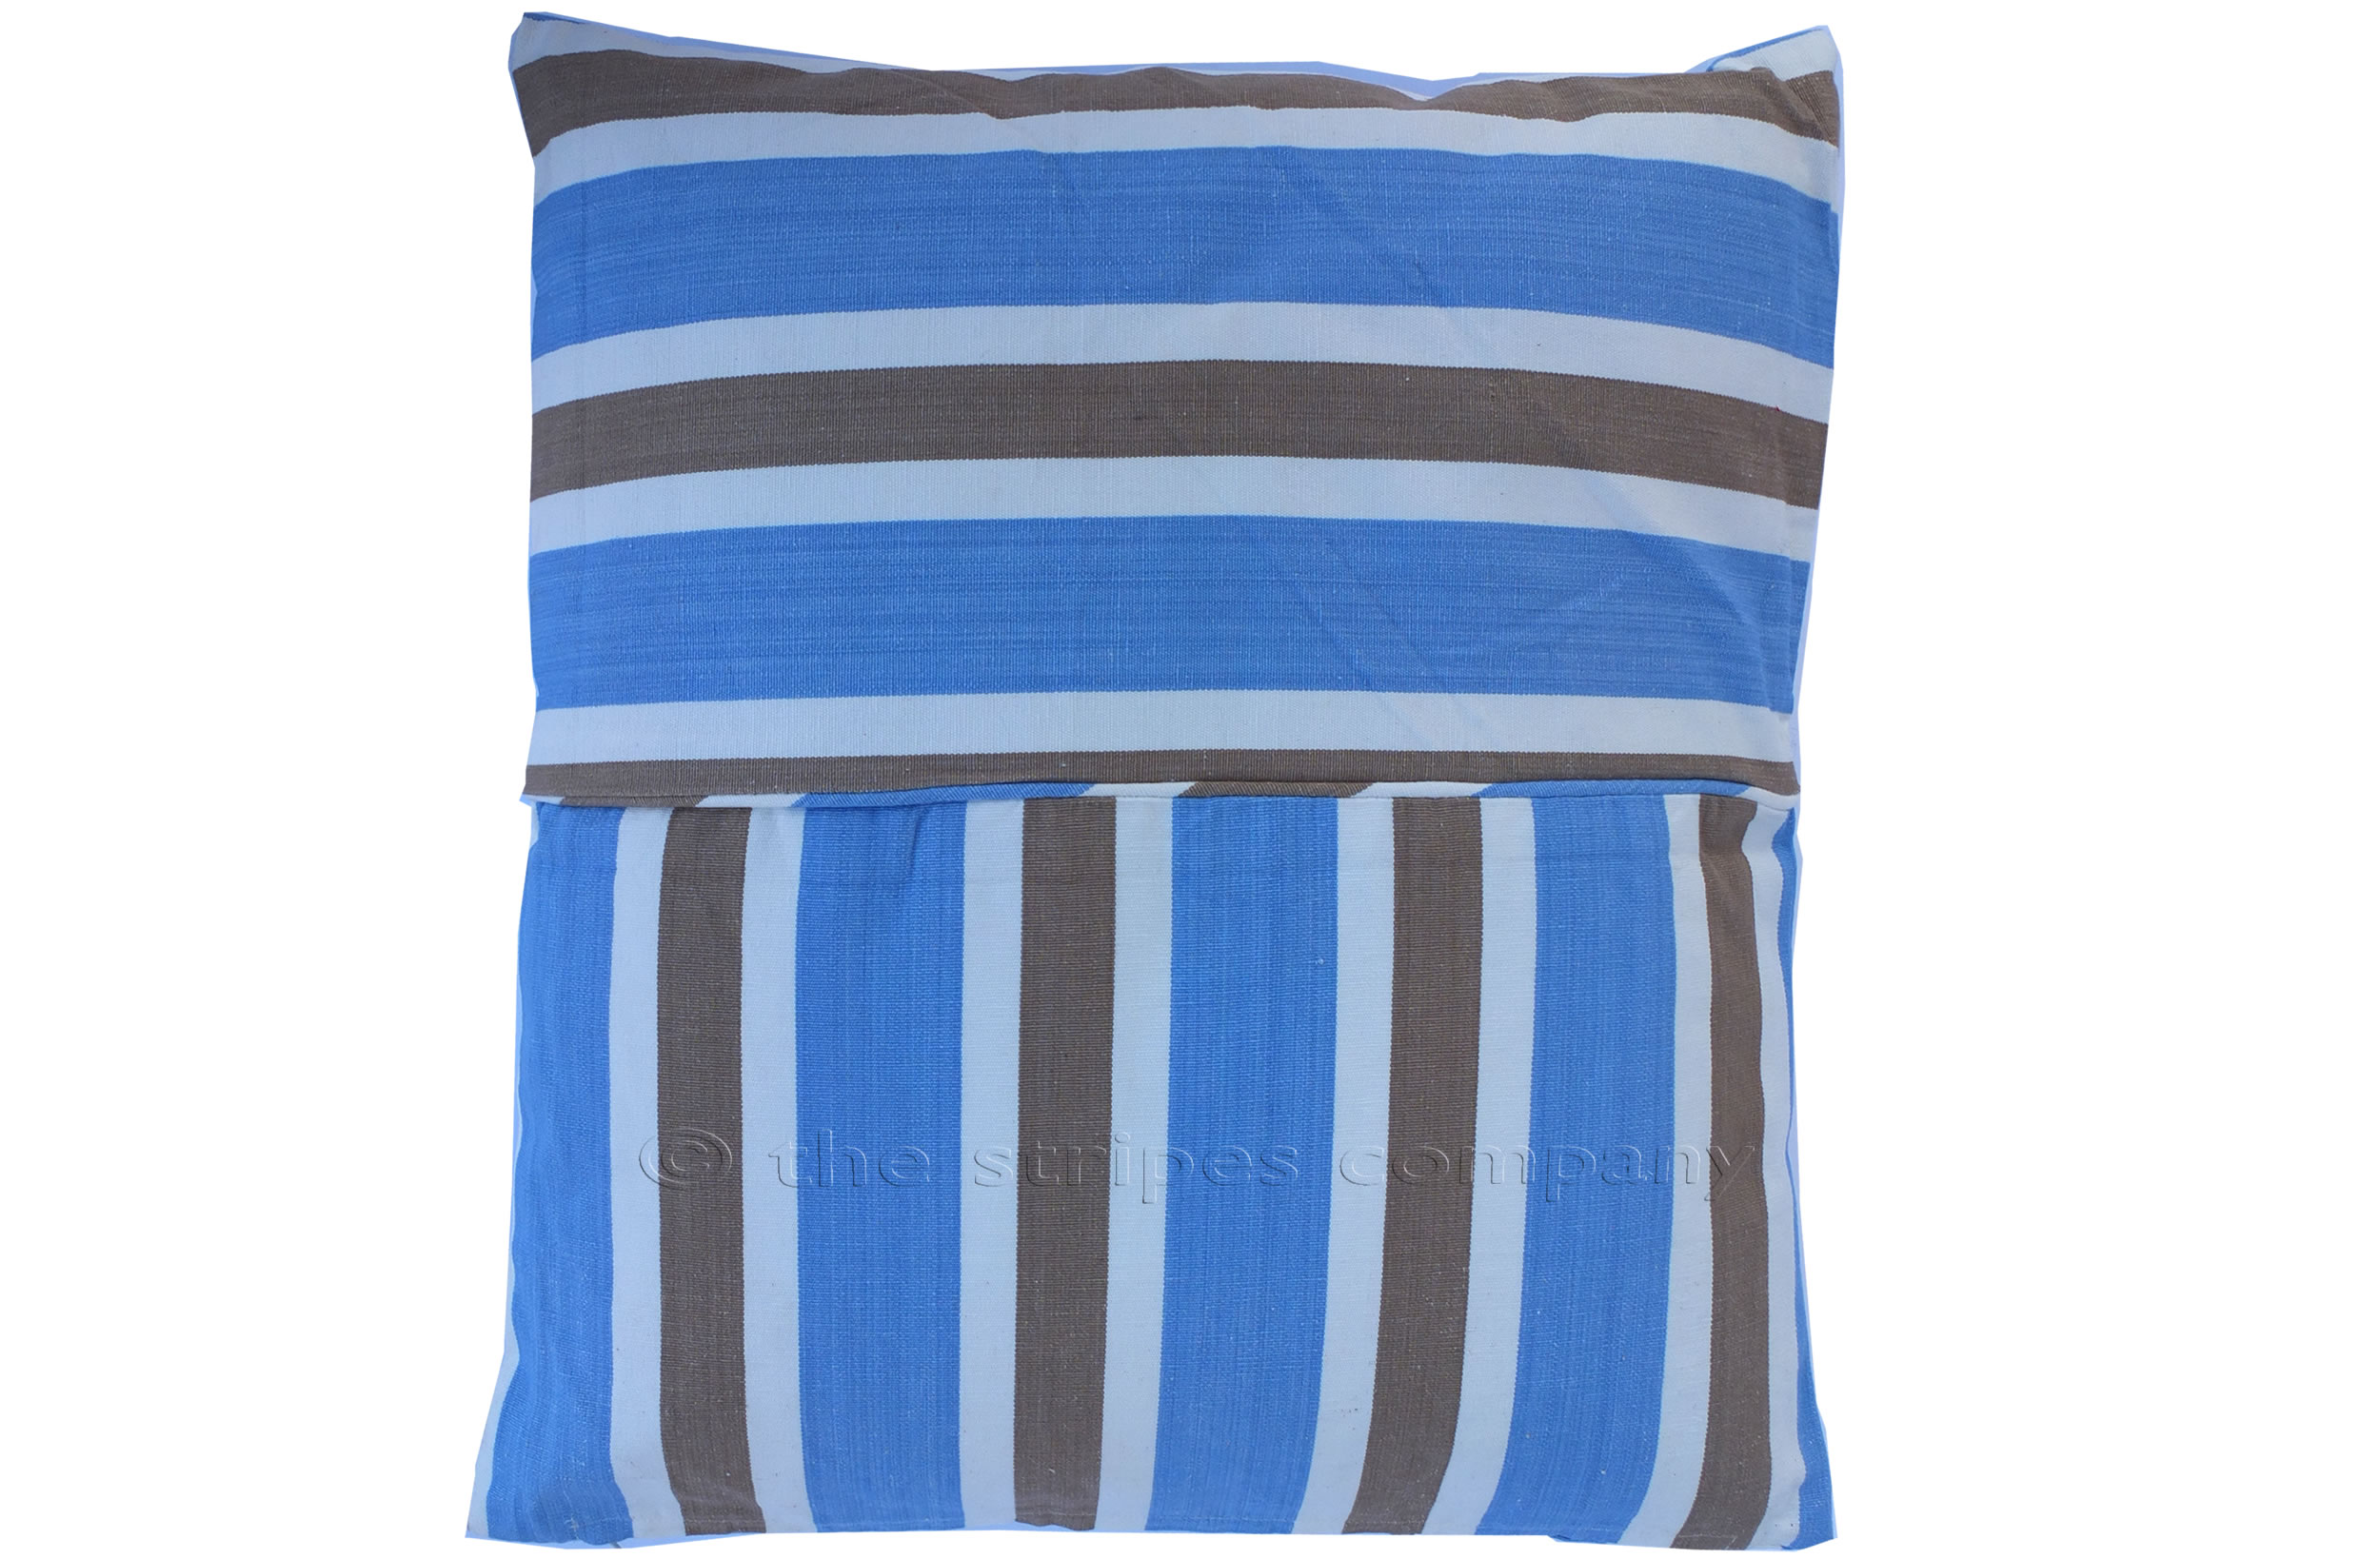 Striped Piped Cushions | Square Piped Cushions sky blue, beige, white